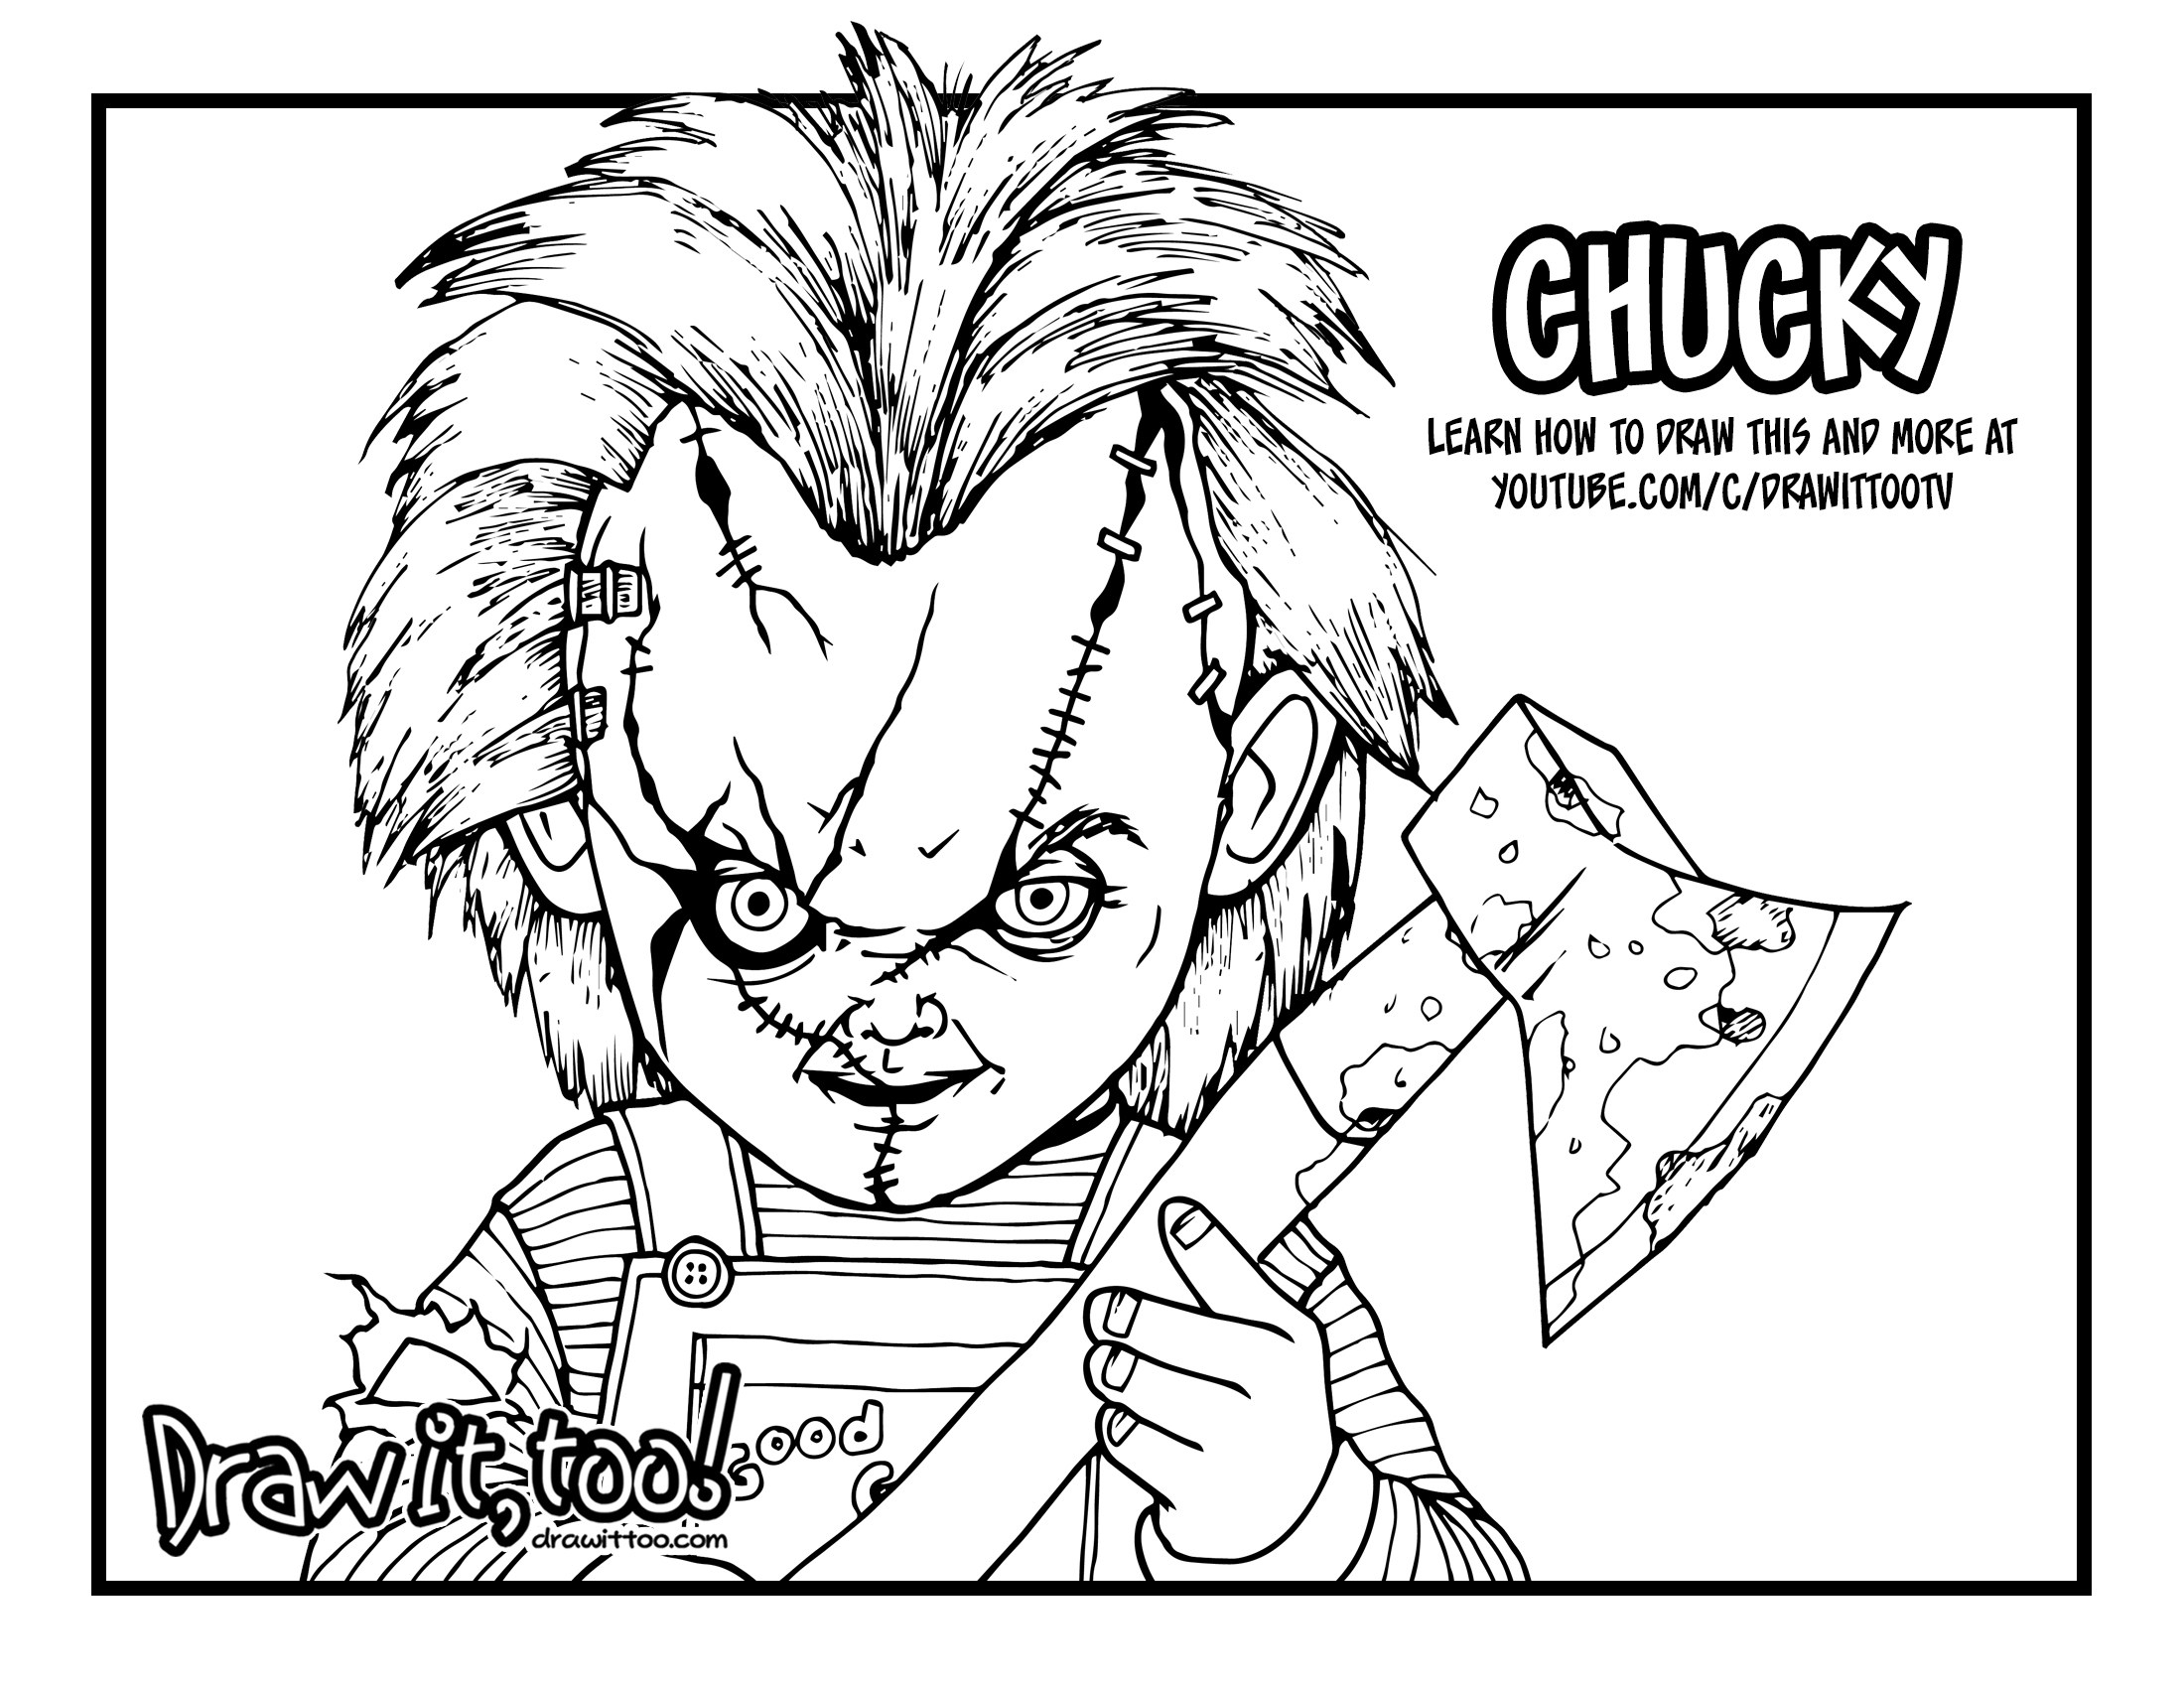 Chucky Coloring Pages 8 Chucky Drawing Coloring Page For Free Download On Ayoqq